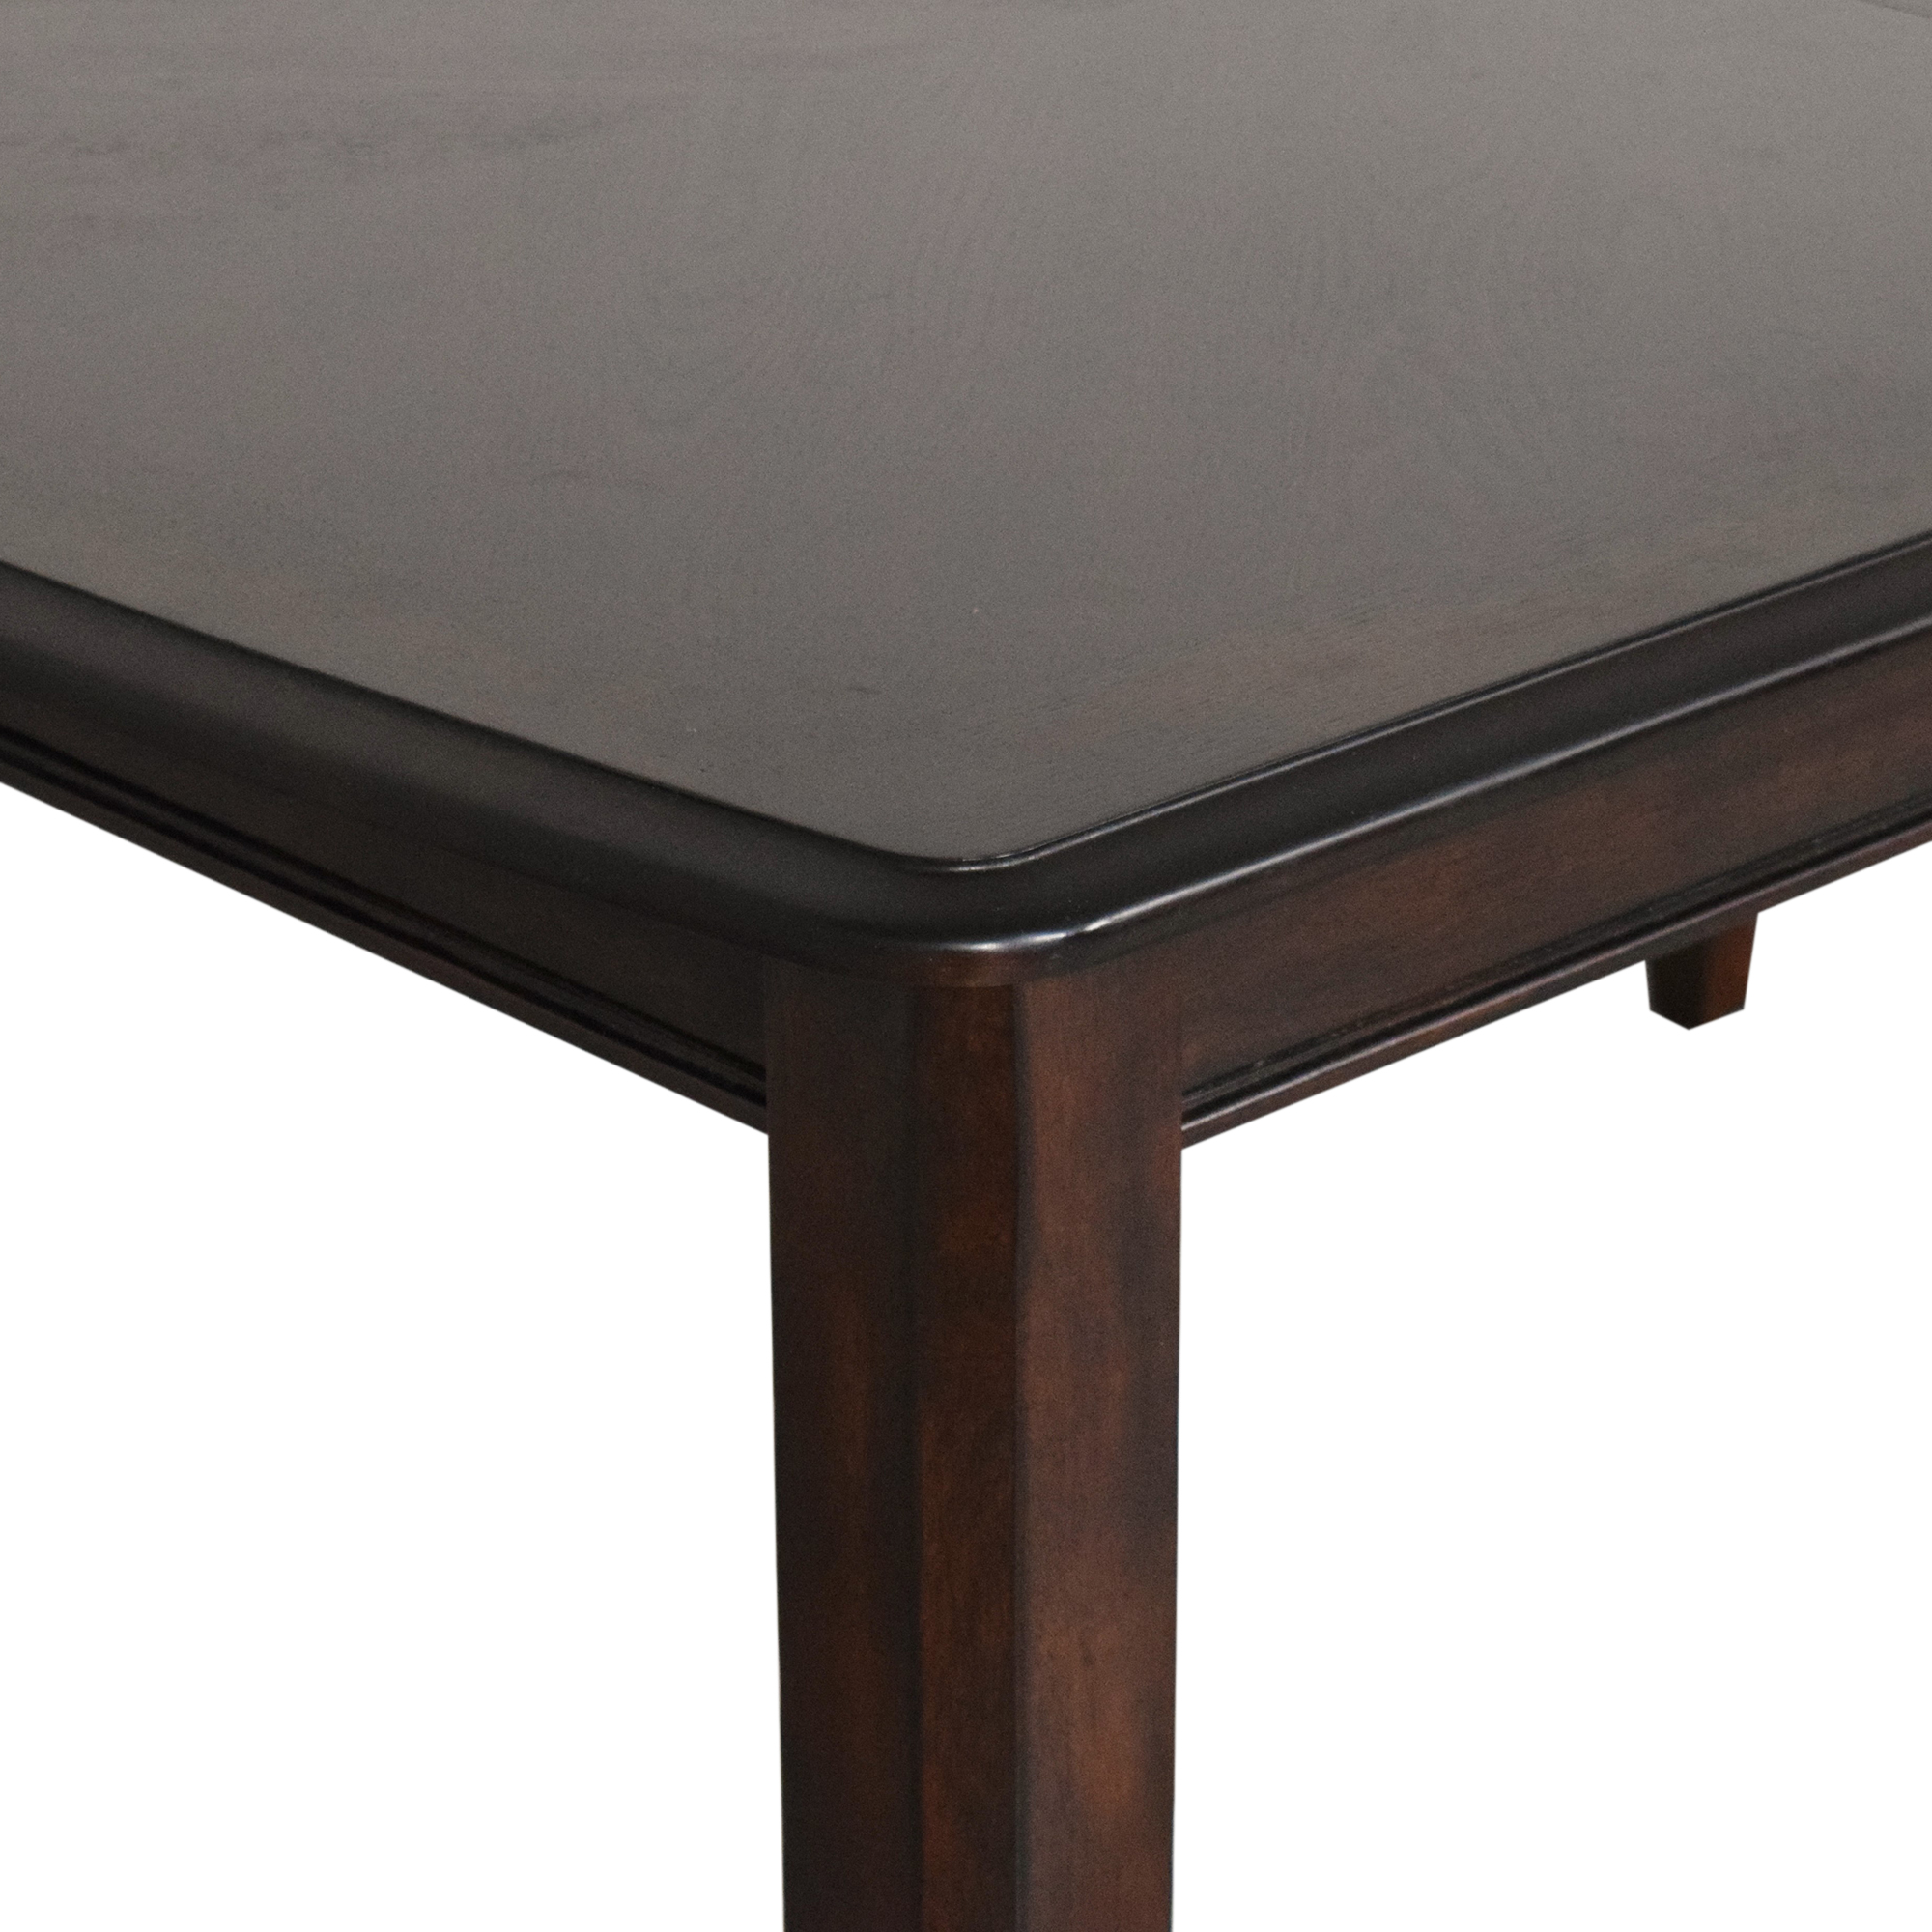 Raymour & Flanigan Extendable Dining Table Raymour & Flanigan